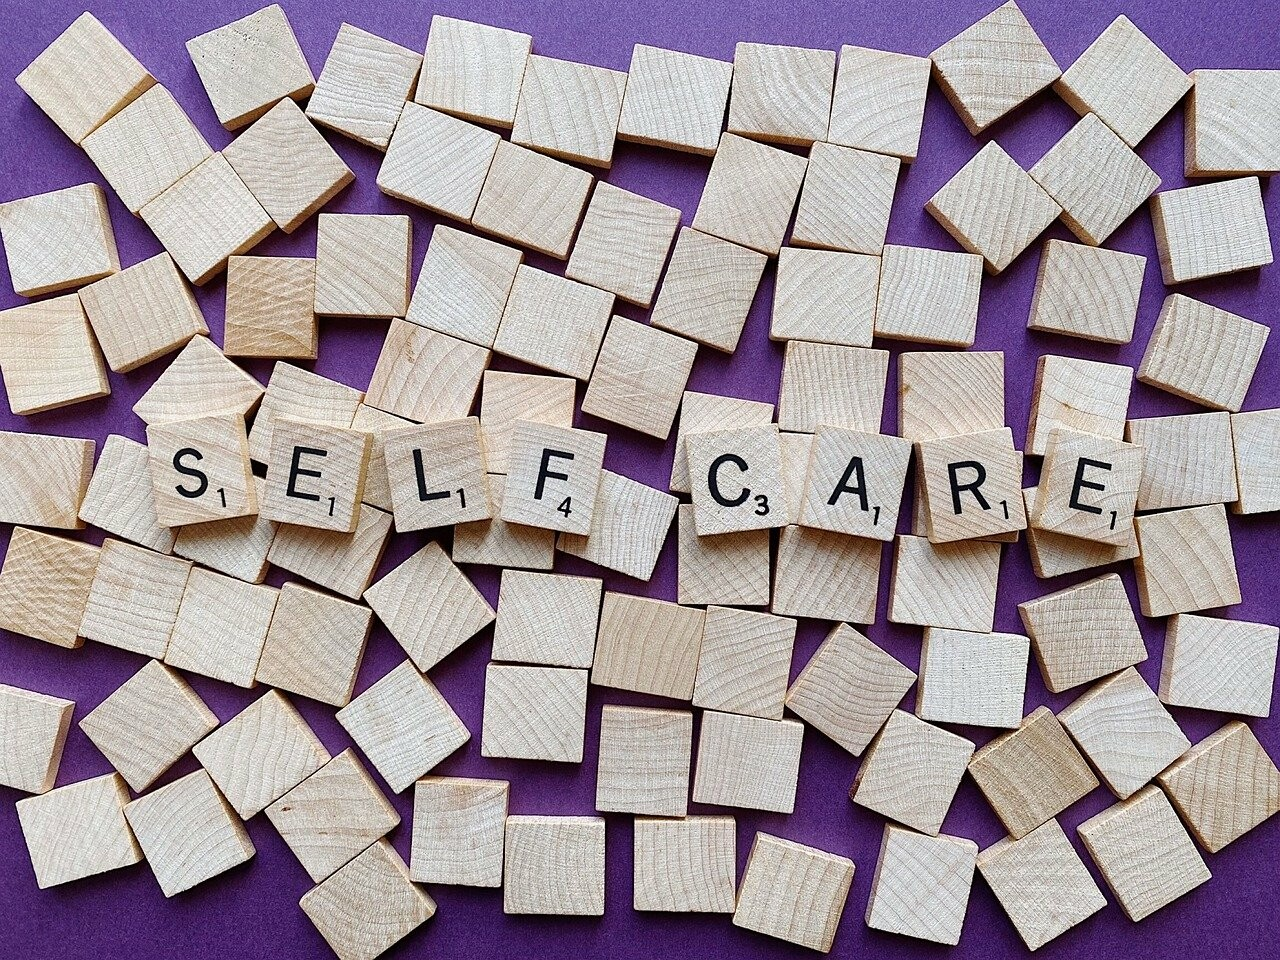 Self-Care - A Necessity NOT a luxury